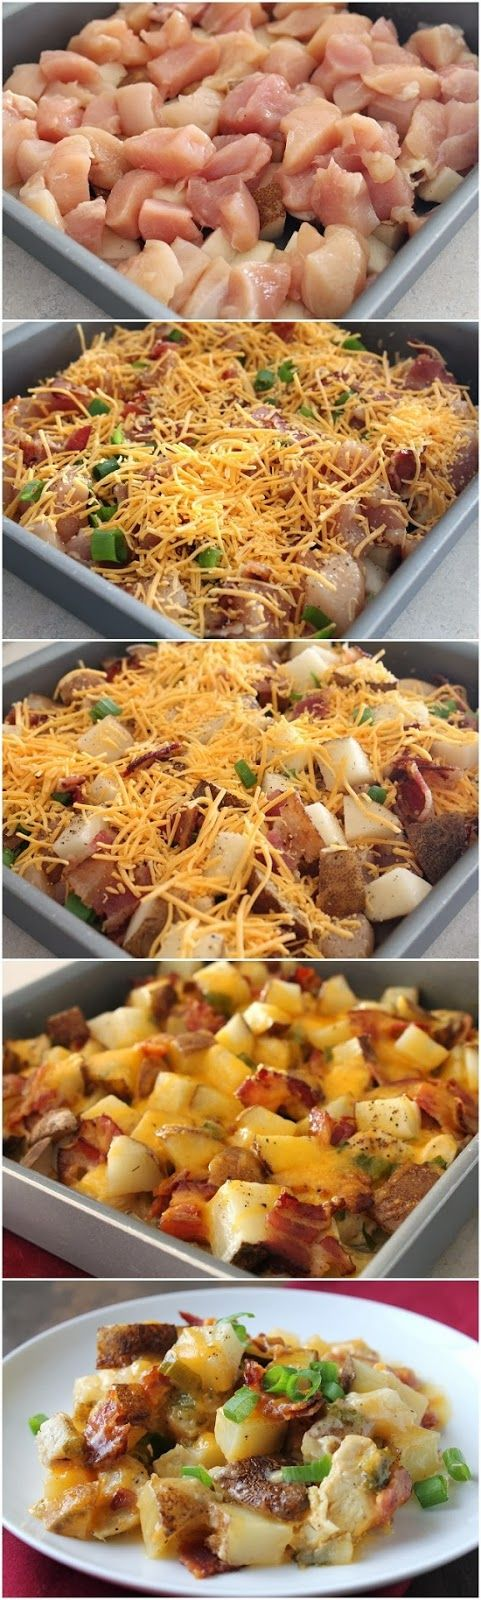 Food & juices: Loaded Baked Potato And Chicken Casserole